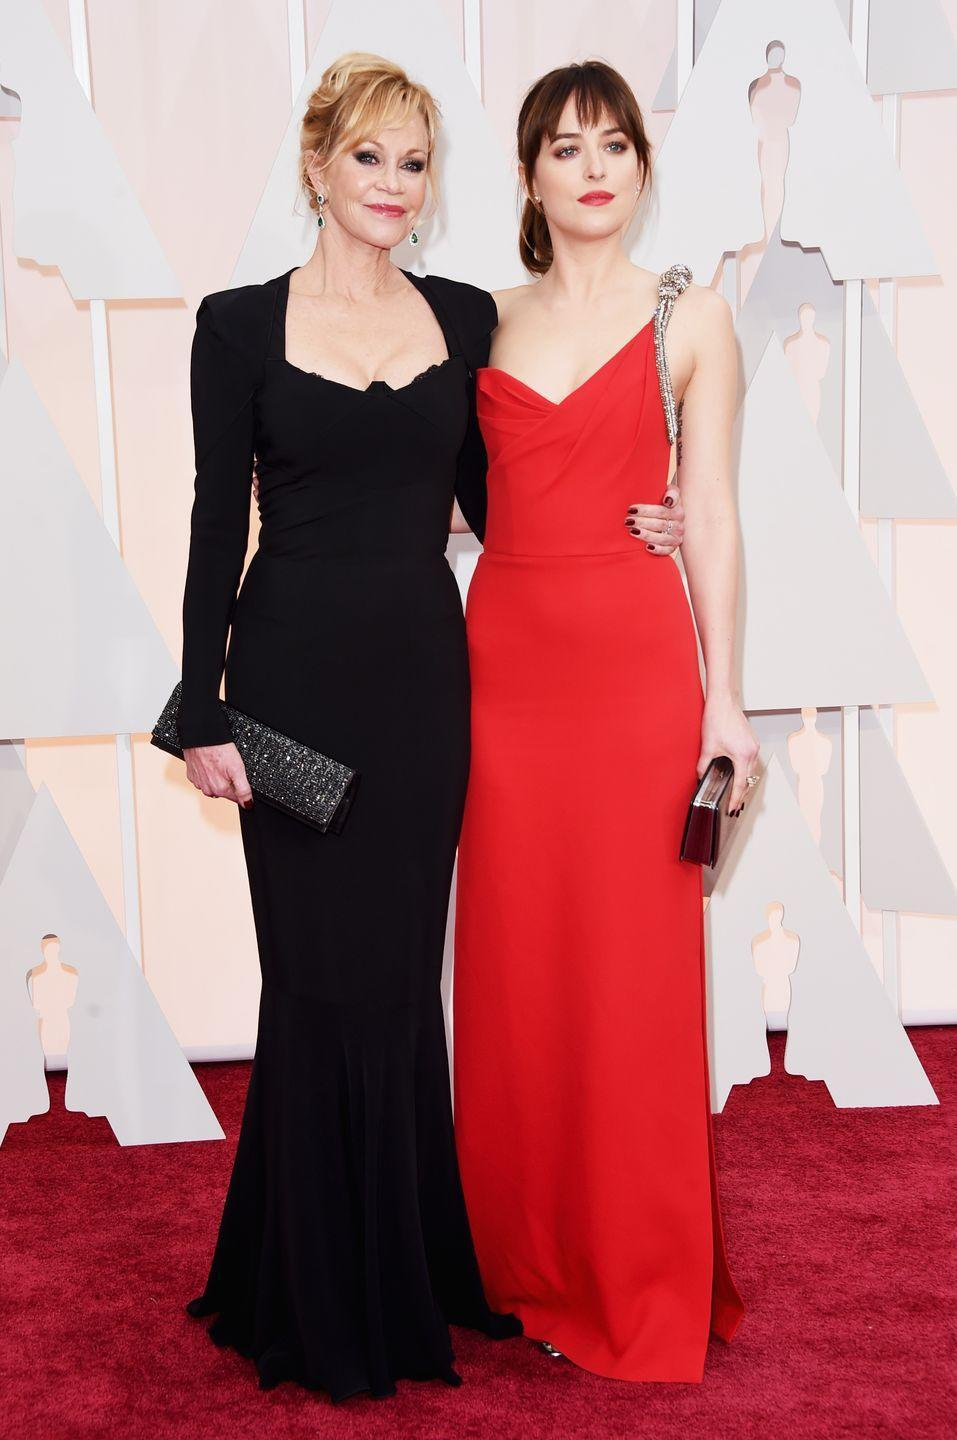 <p>Melanie Griffith's eldest daughter with Don Johnson, Dakota Johnson, strongly resembles both her famous parents. Despite their contrasting hair colors, the mom-and-daughter duo especially look strikingly similar. </p>